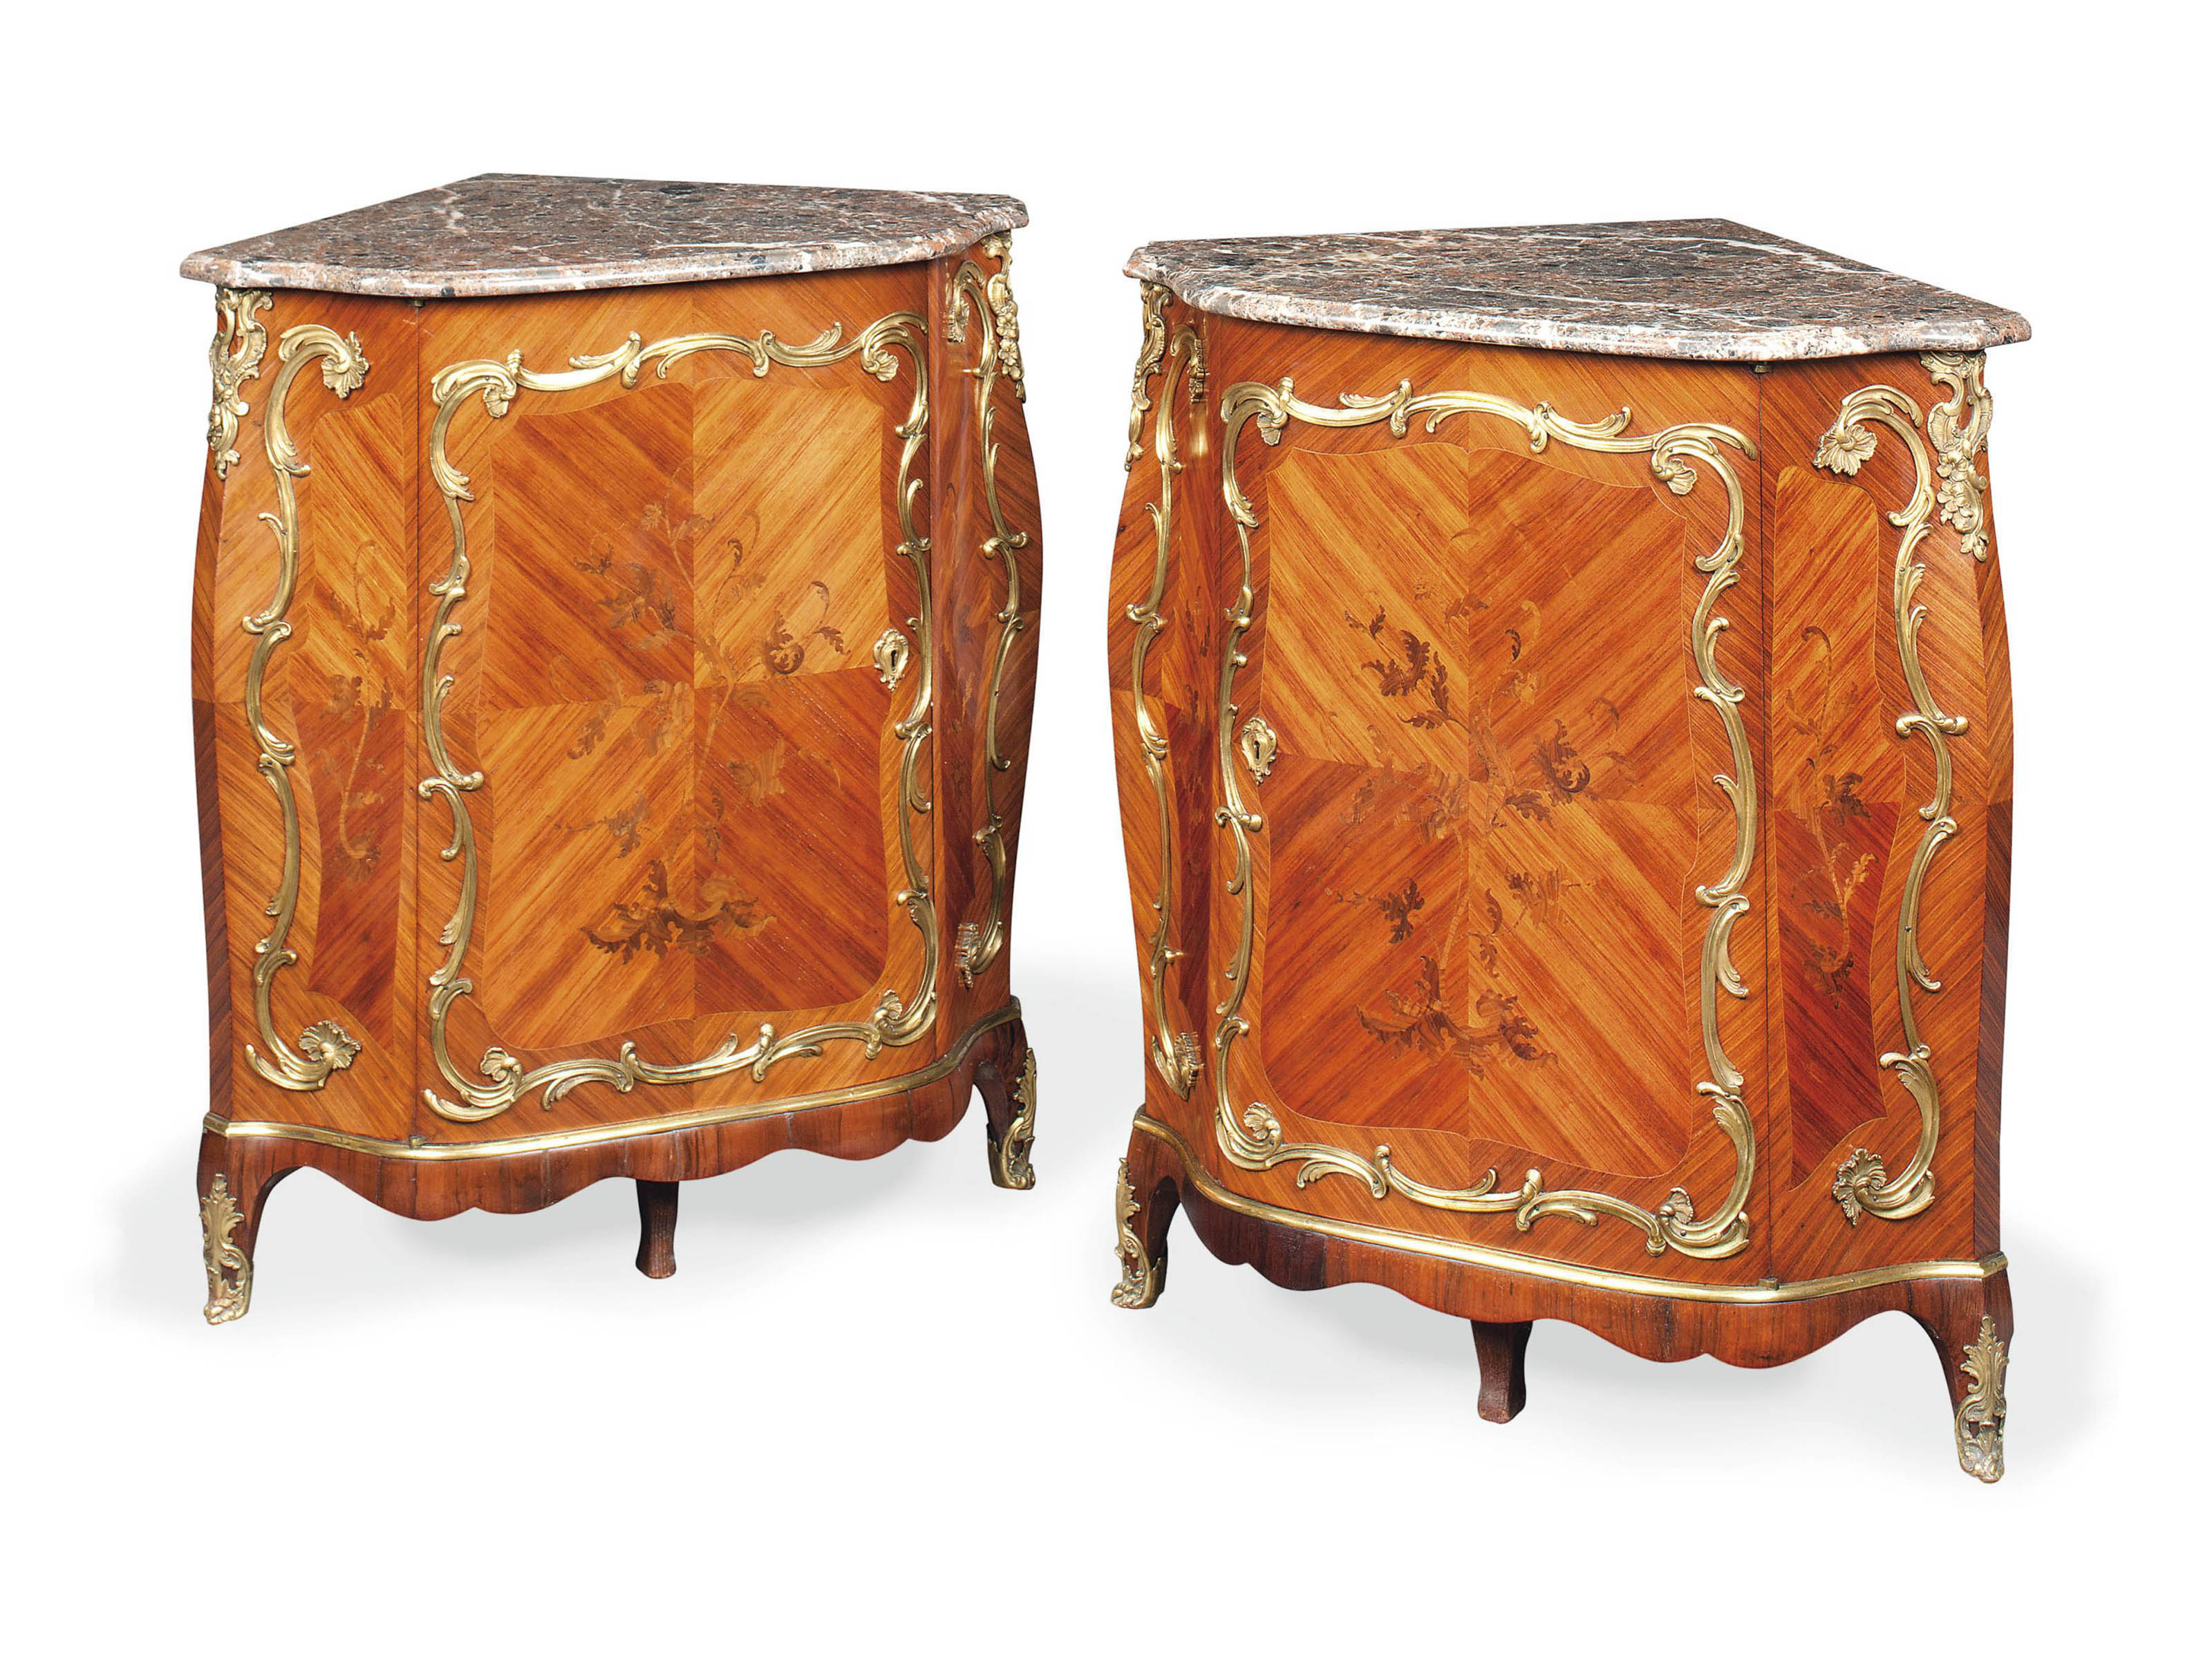 A PAIR OF VICTORIAN ORMOLU-MOUNTED KINGWOOD, TULIPWOOD AND BOIS-DE-BOUT MARQUETRY ENCOIGNURES